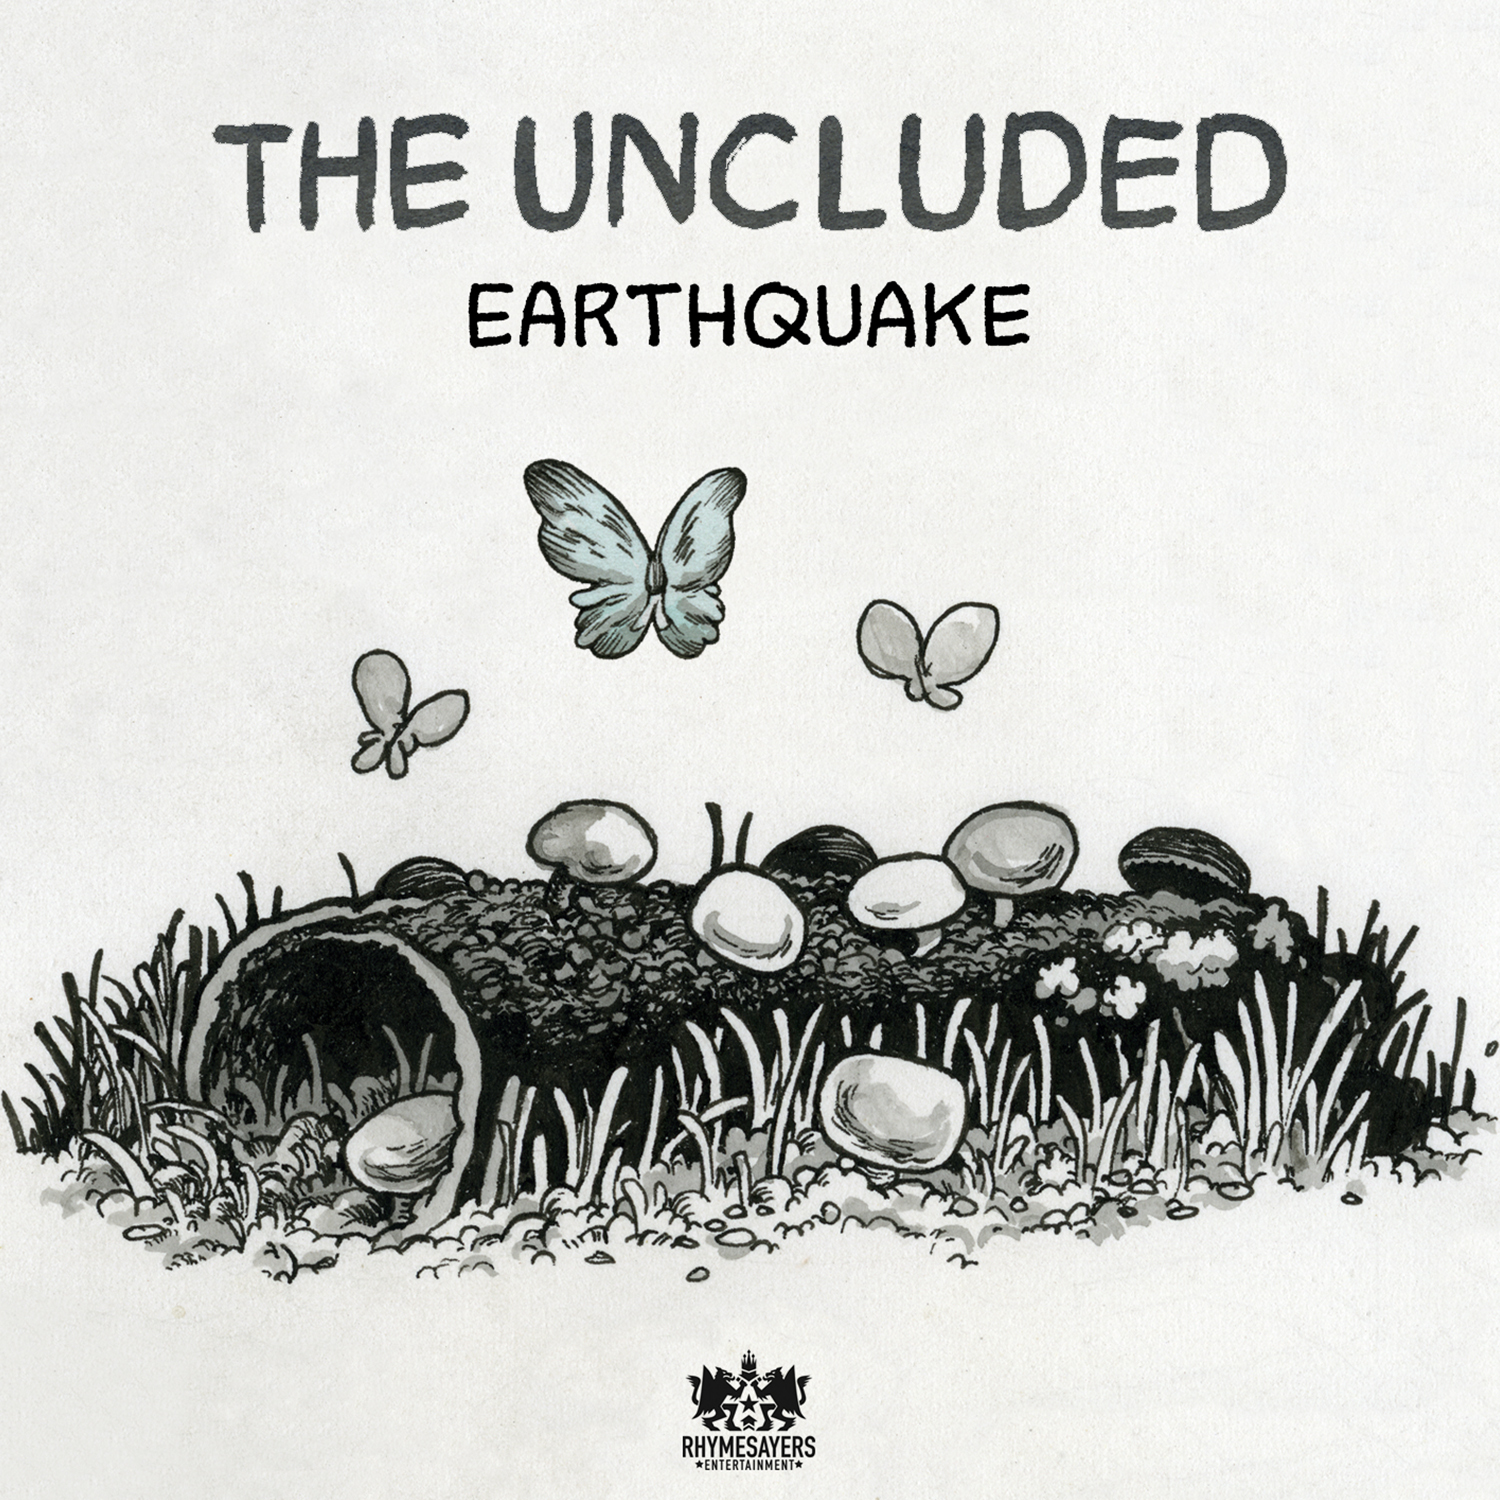 The Uncluded Earthquake